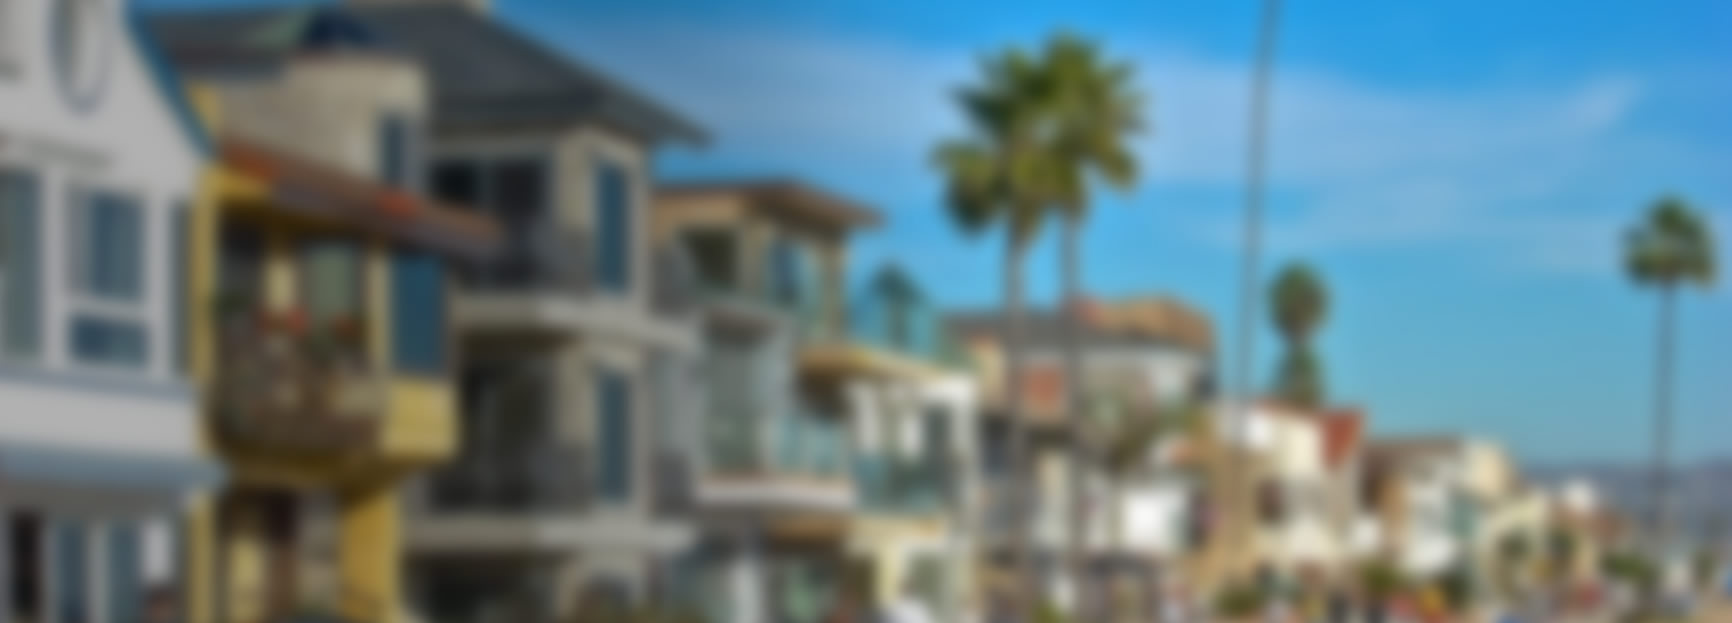 Blurred image of townhomes in a beachfront community